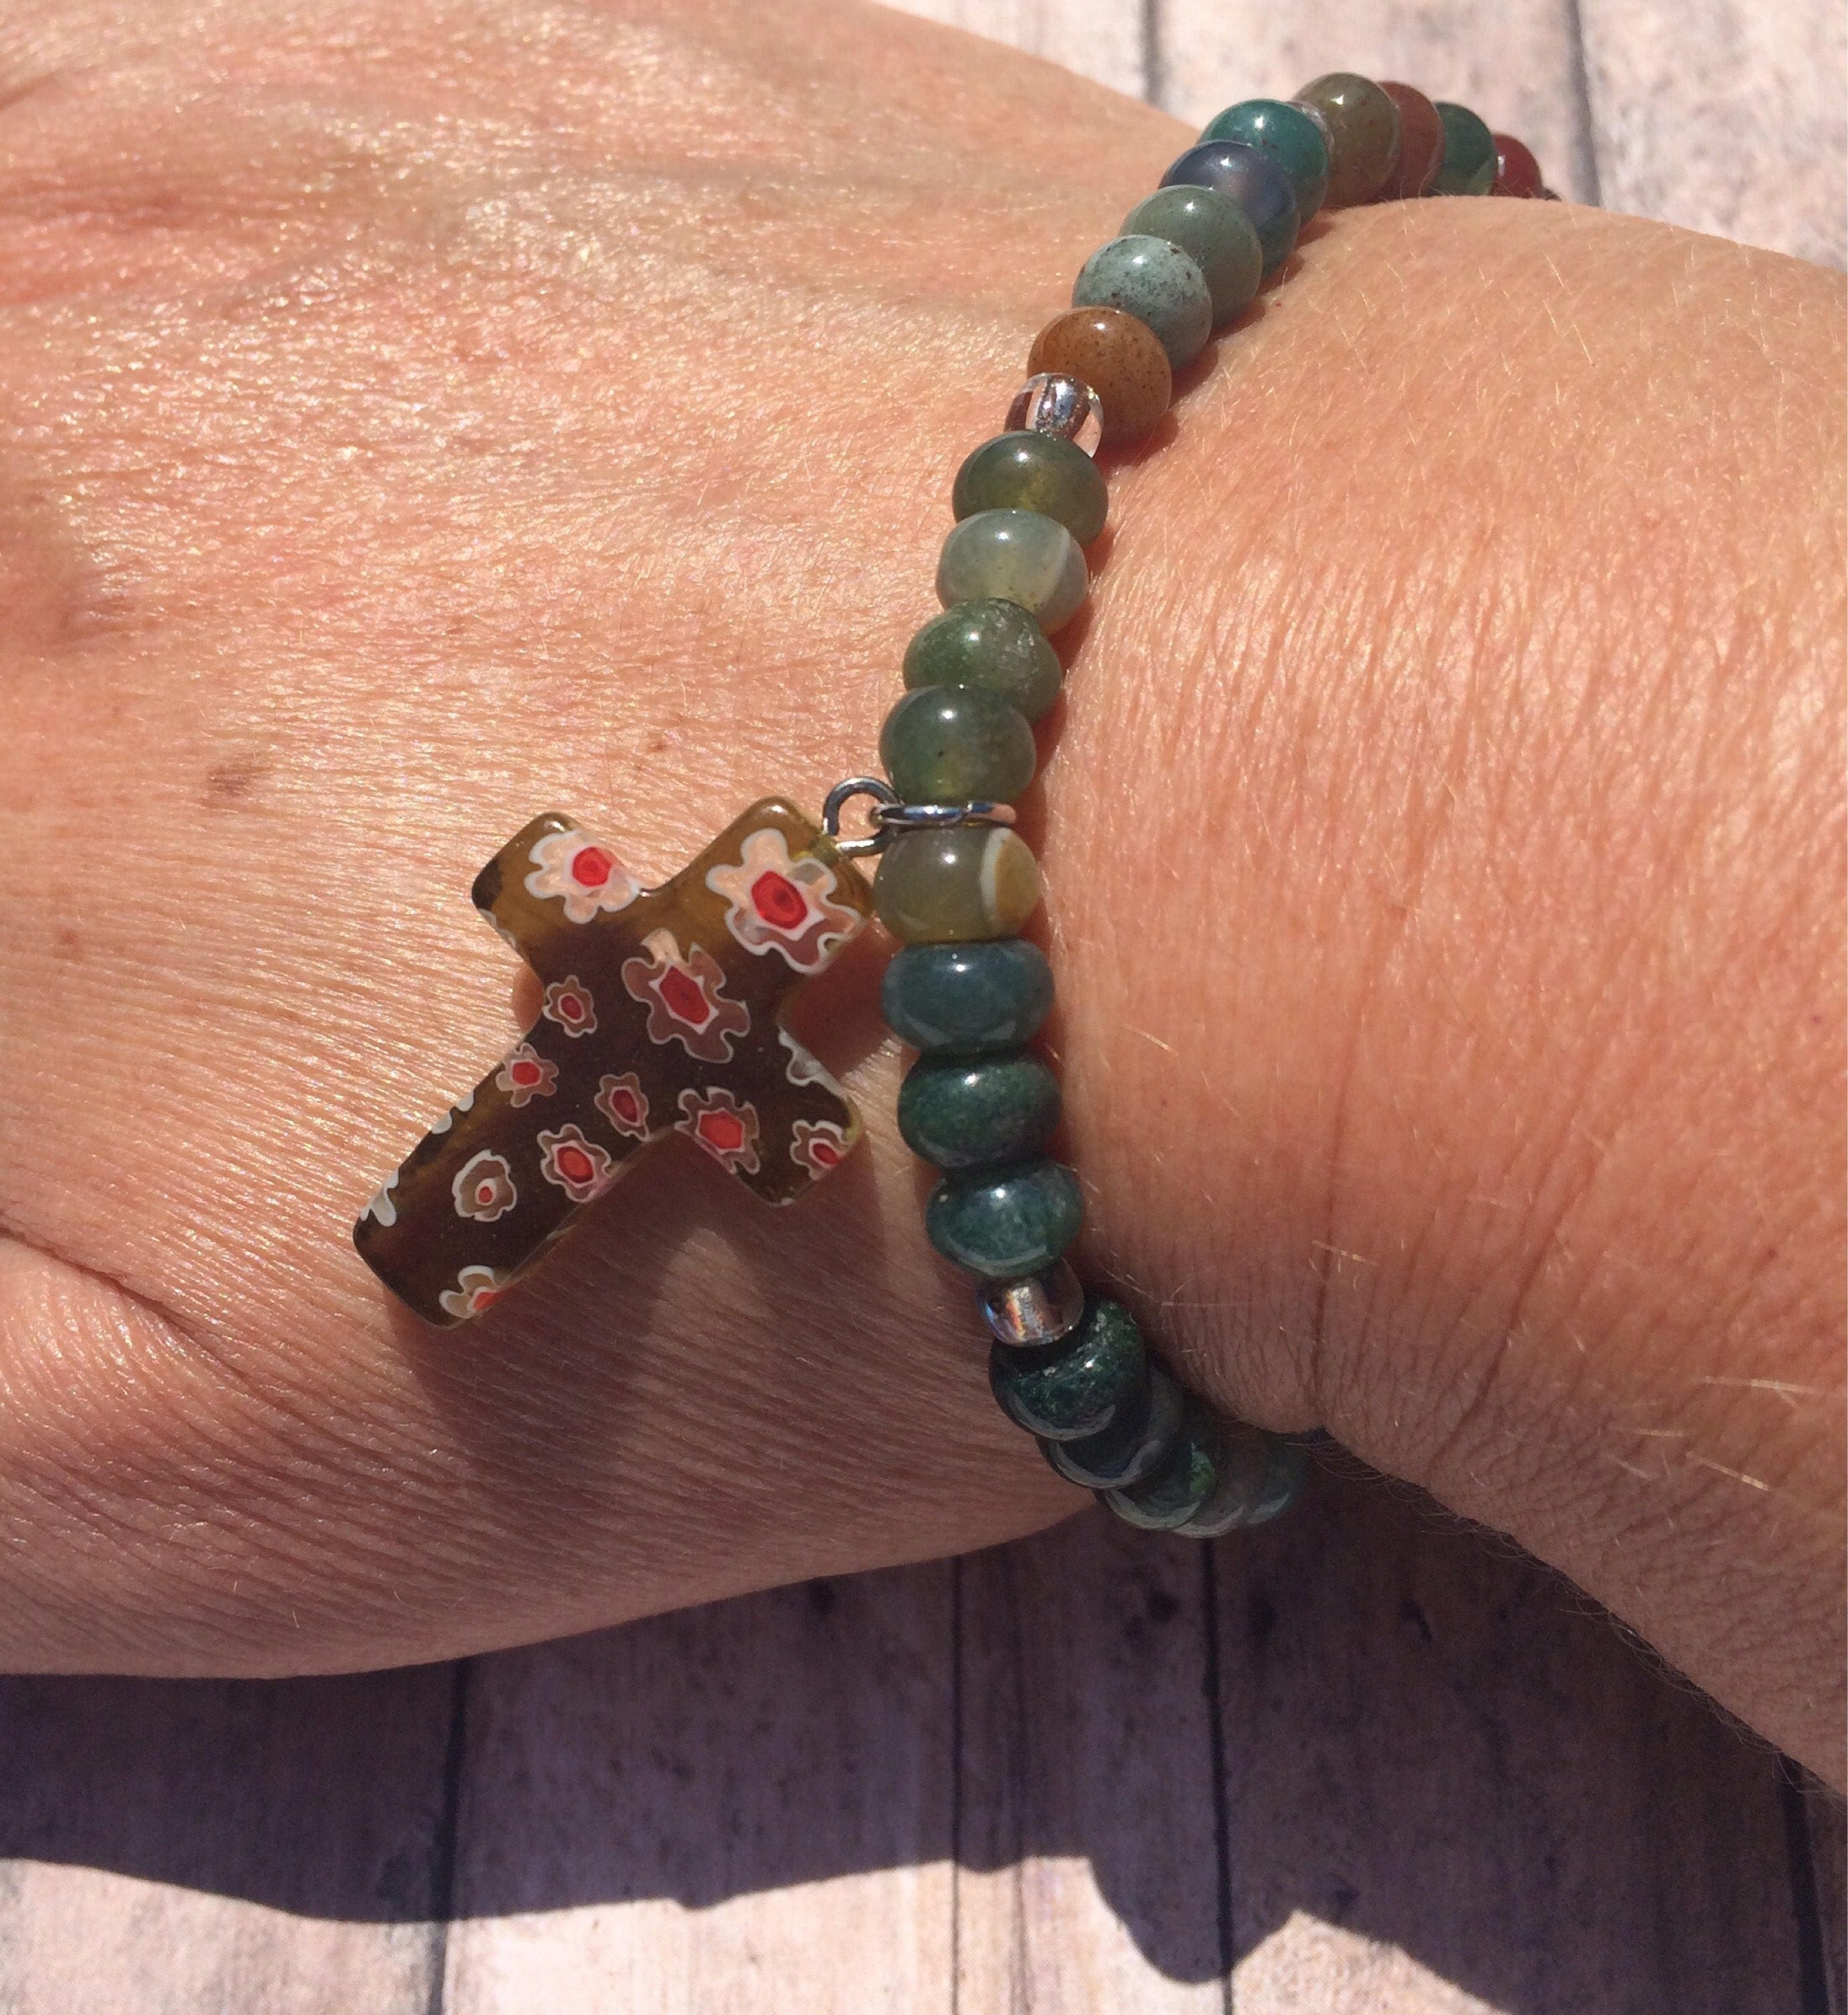 bracelet friday church fabulous of by using black the cathy pin tartooful bead